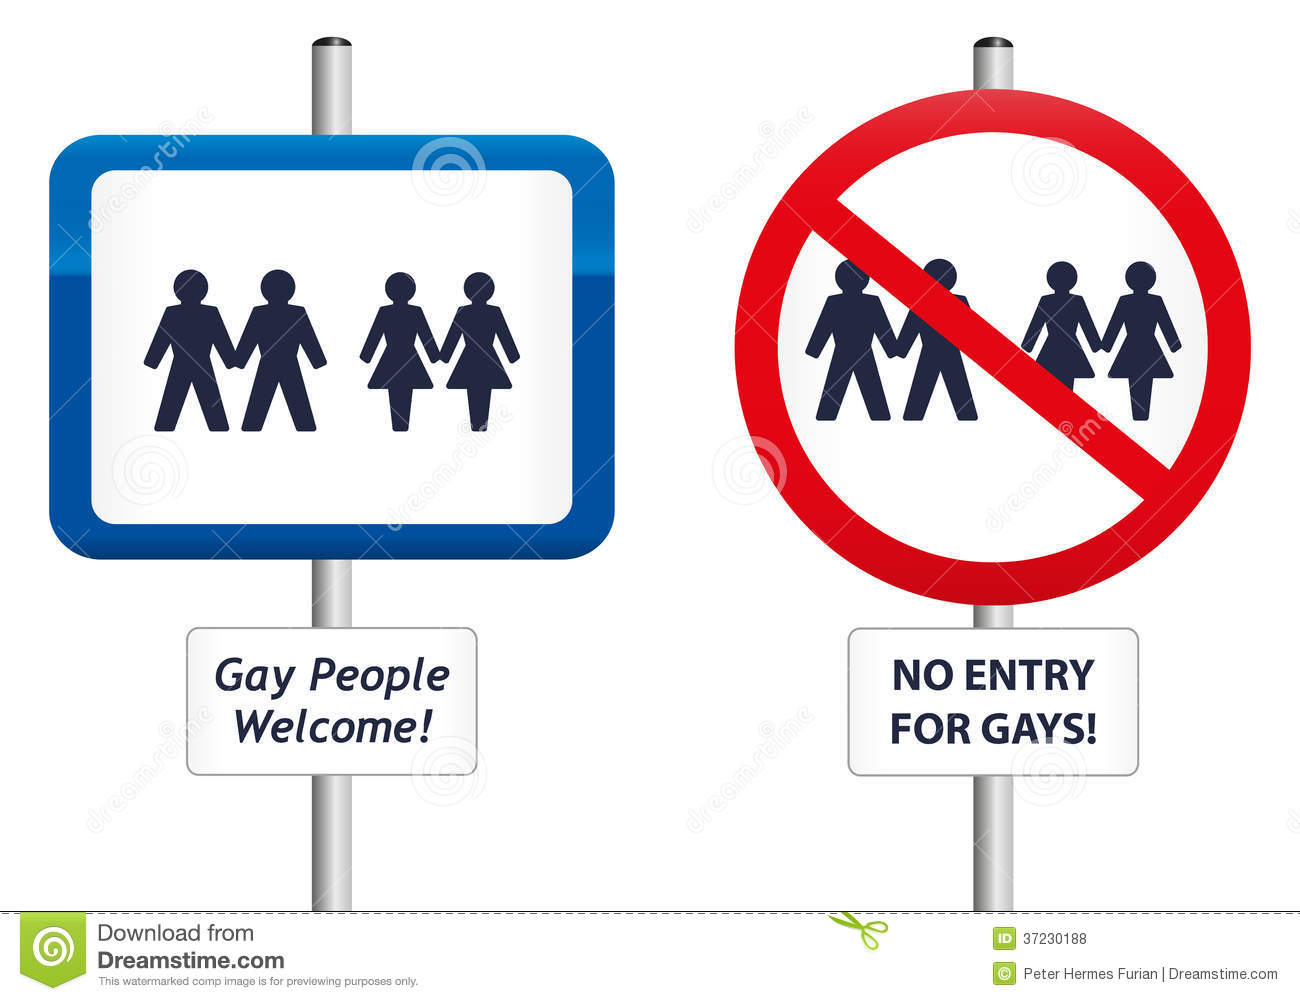 from Avi signs that a person is gay